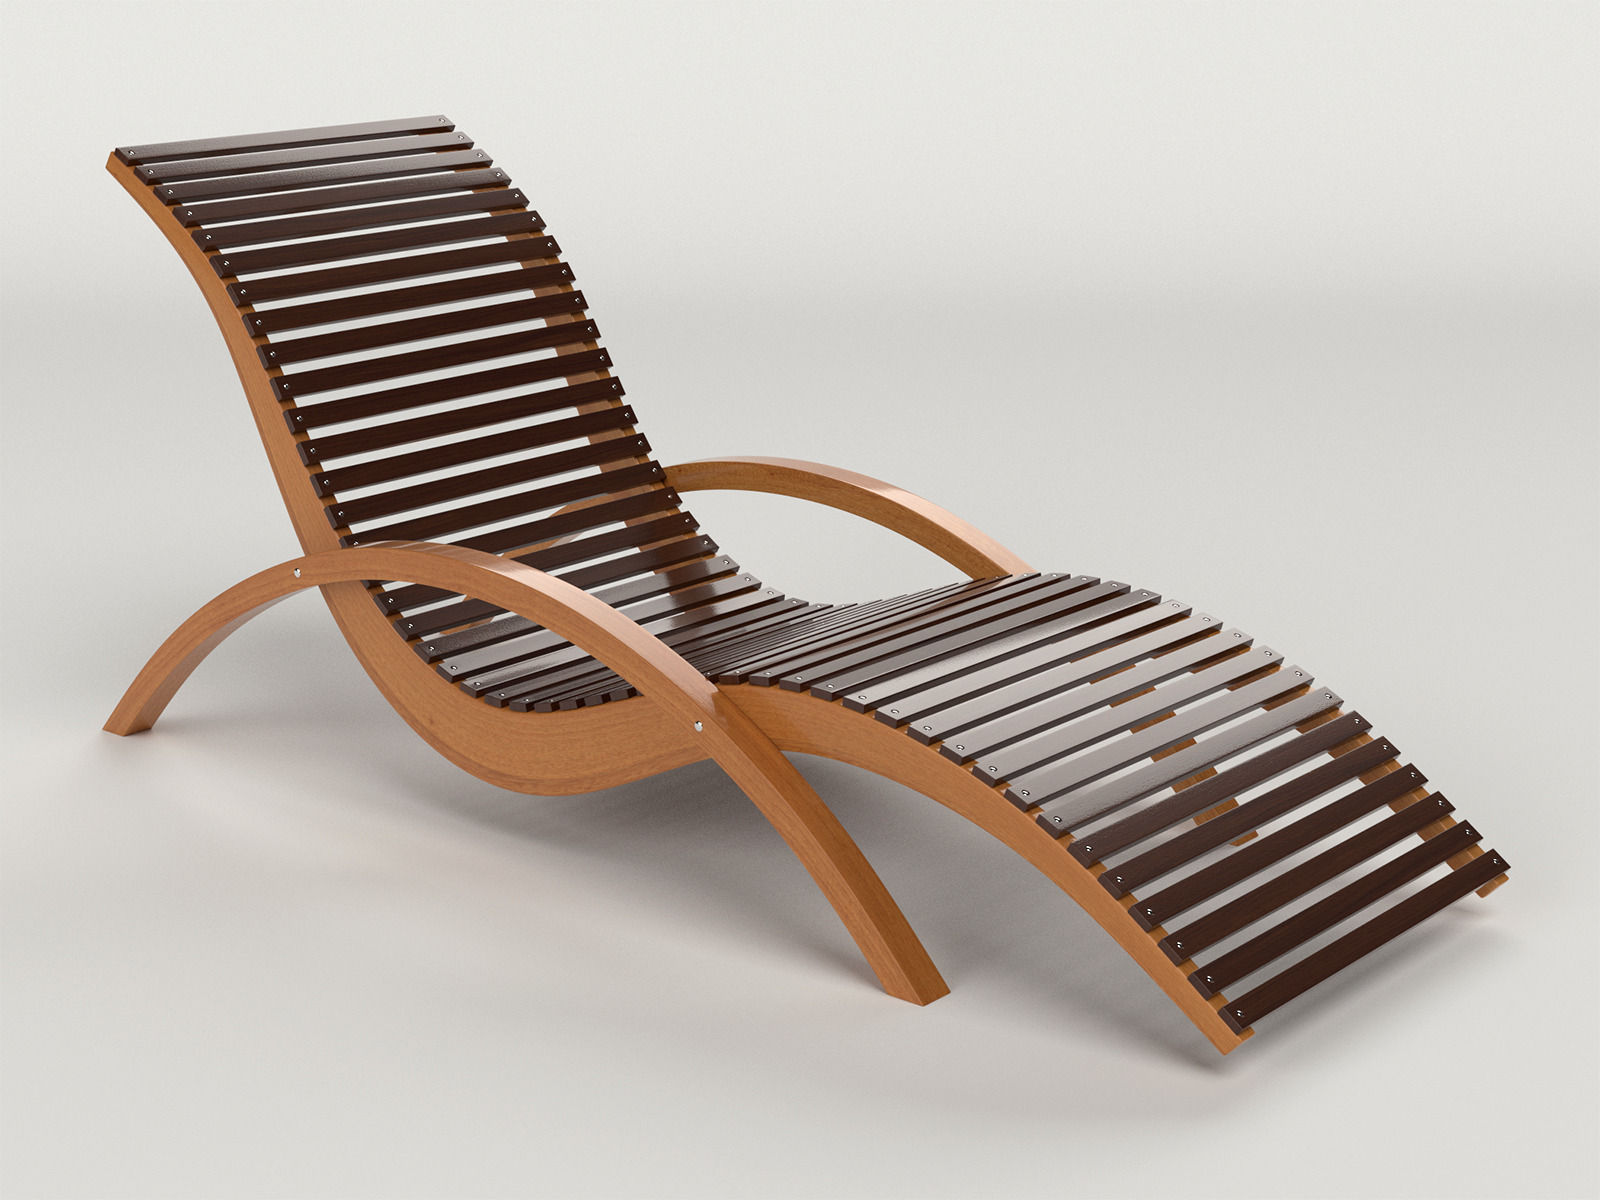 White Outdoor Lounge Chair Lounge Chair Outdoor Wood Patio Deck 3d Model